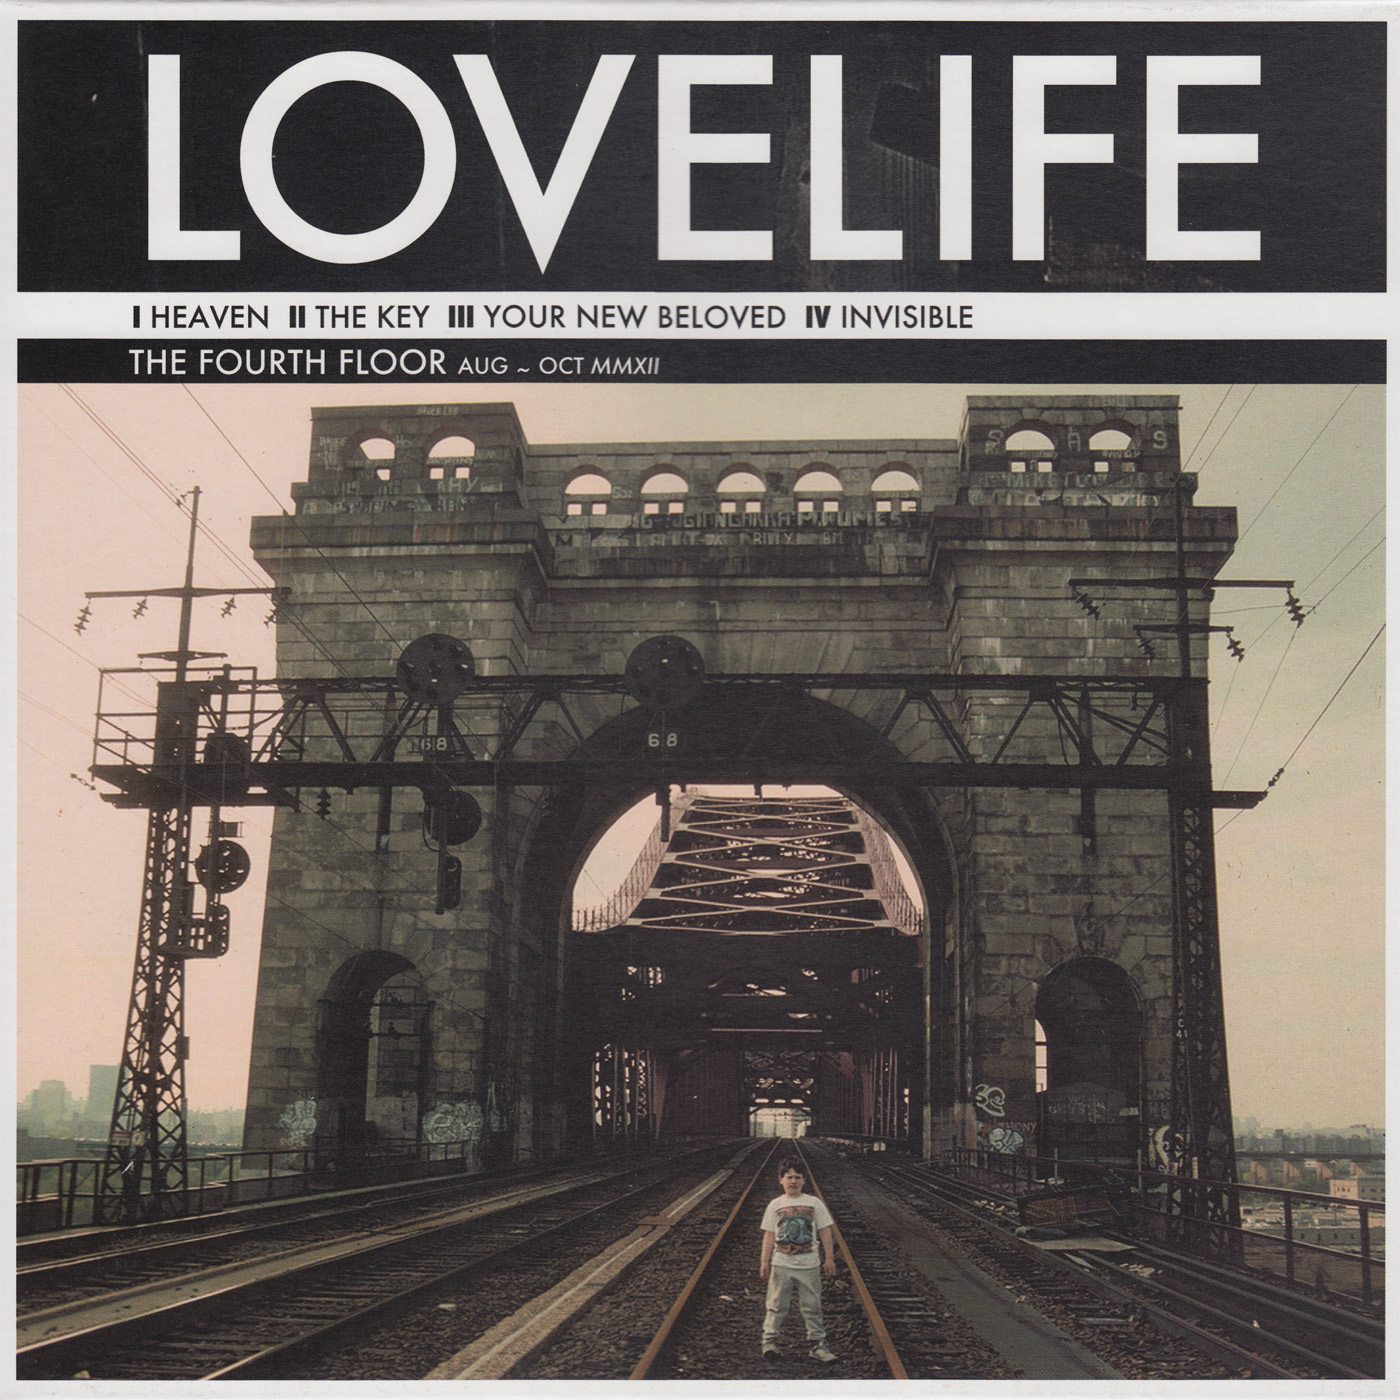 "The cover image of the band Lovelife's single ""Your New Beloved."" Across the top is a black banner reading ""Lovelife"" in bold white lettering. Beneath the band name, it reads the song titles on the single: ""1. Heaven 2. The Key 3. Your New Beloved 4. Invisible."" Beneath the song titles it reads ""The Fourth Floor Aug ~ Oct MMXII"". Below all the text is an image of a tall stone arch leading to a bridge. The bridge is lined with railroad tracks. At its center stands a chubby boy."